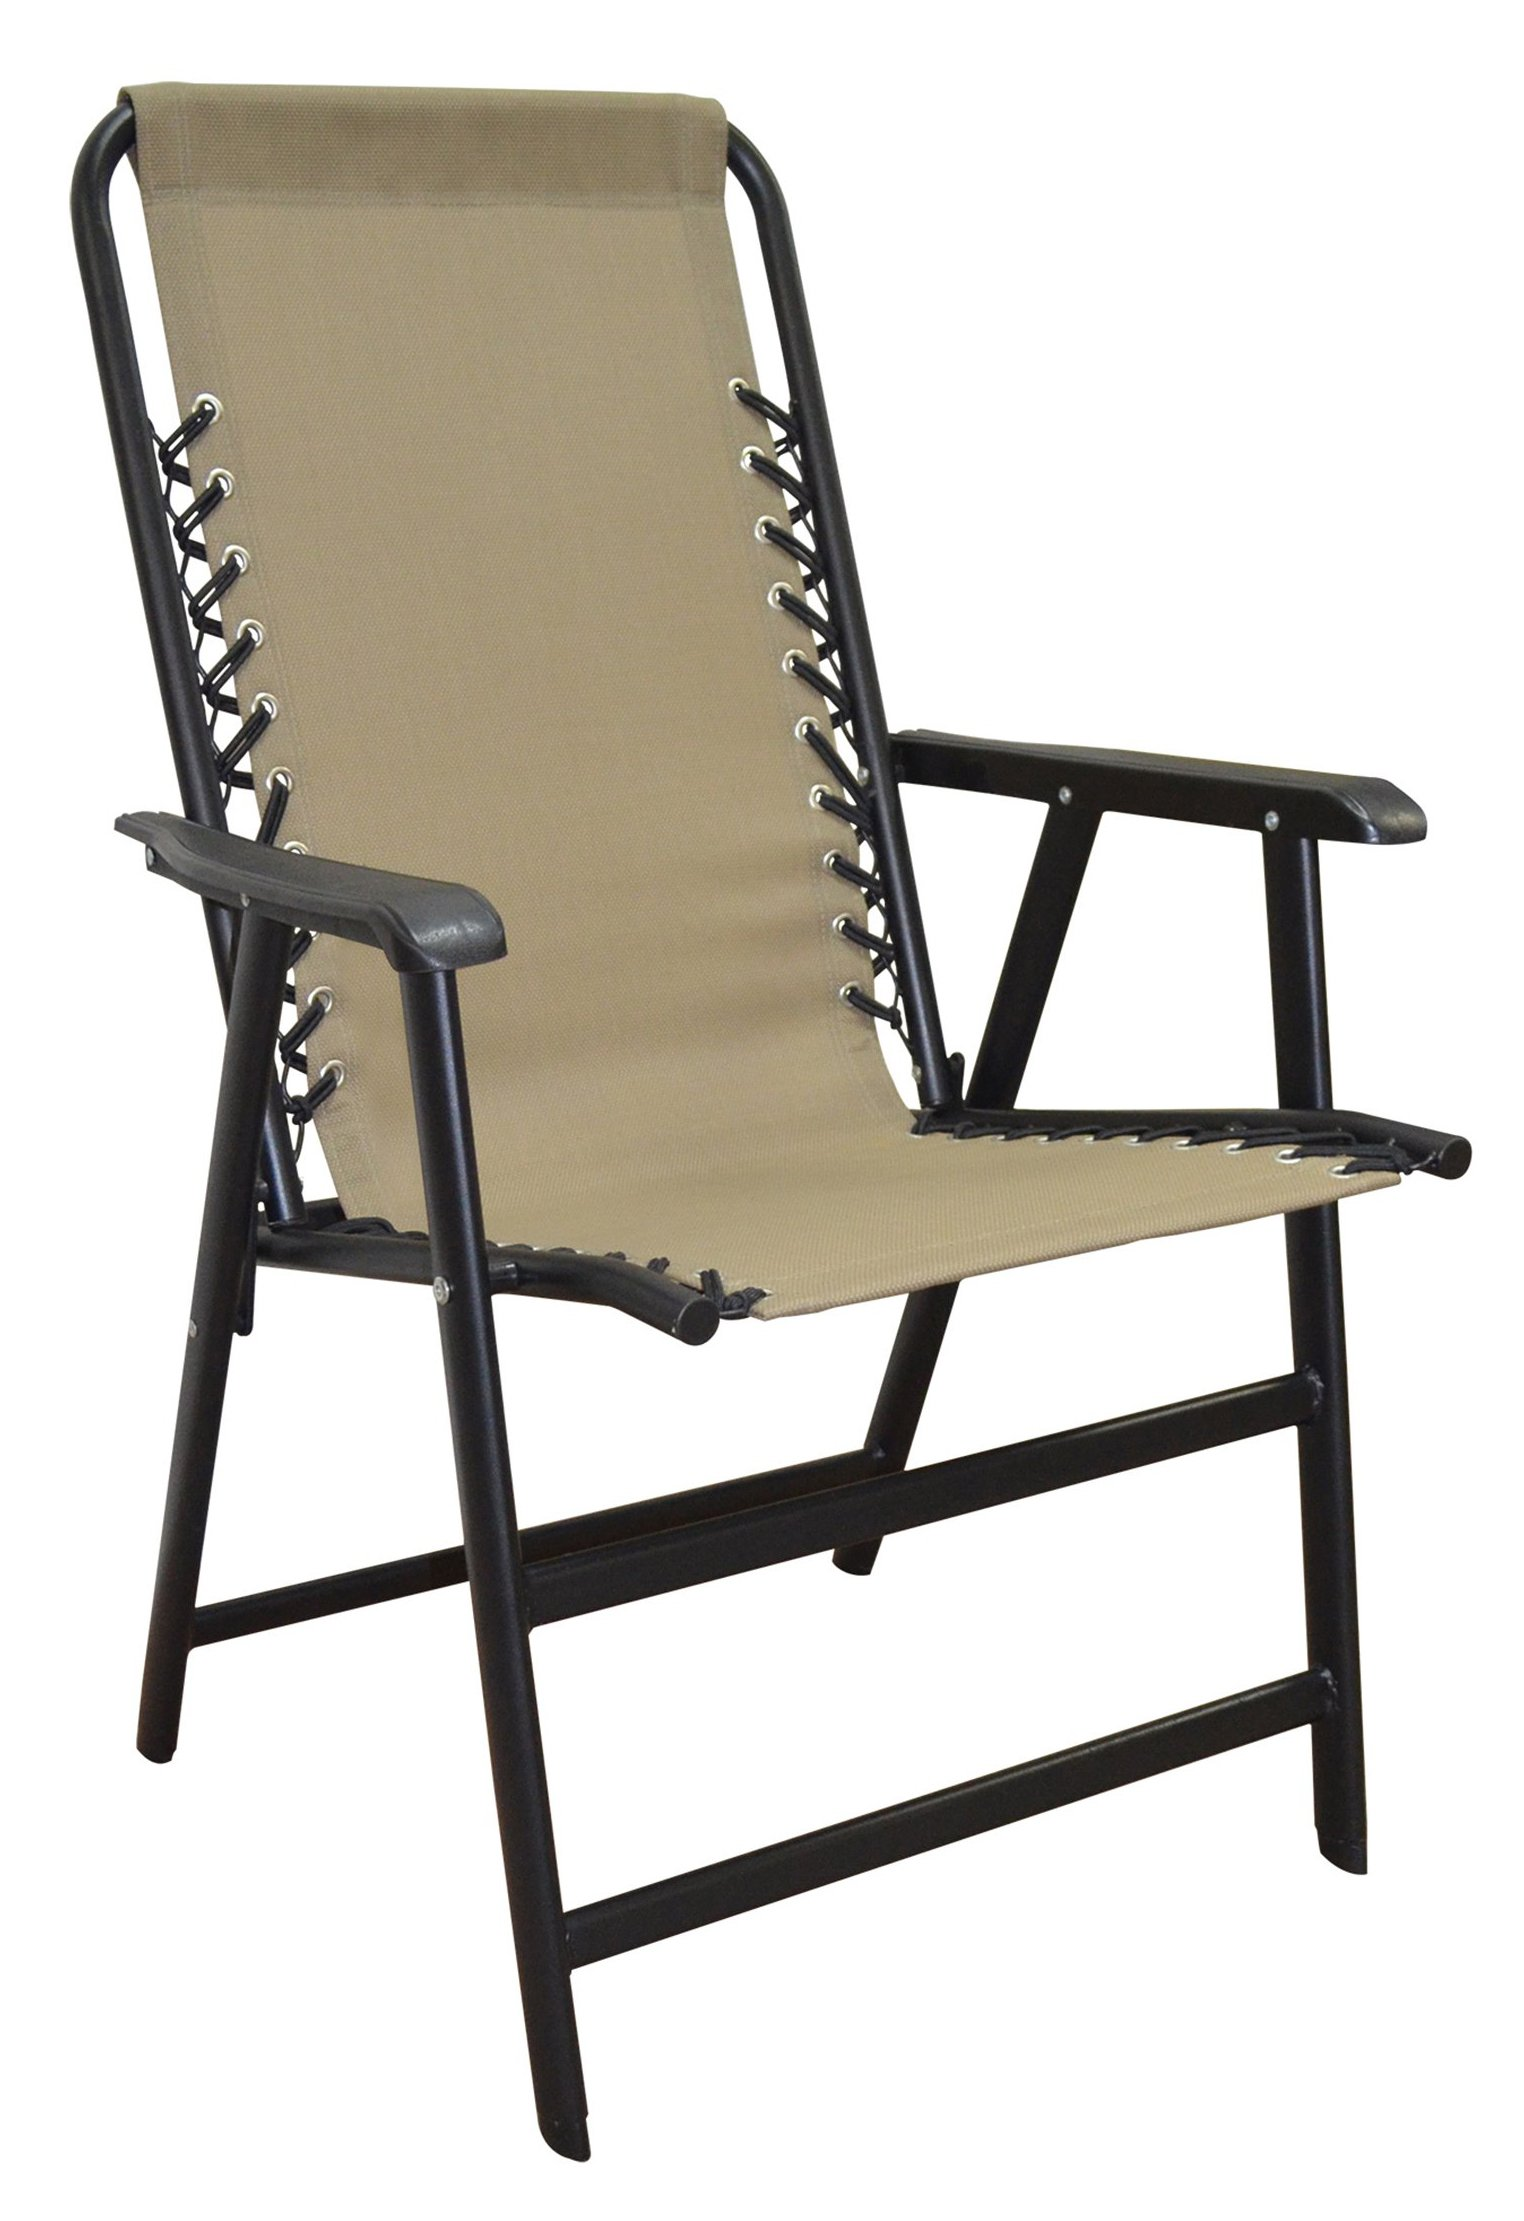 best rated in patio lounge chairs helpful customer. Black Bedroom Furniture Sets. Home Design Ideas